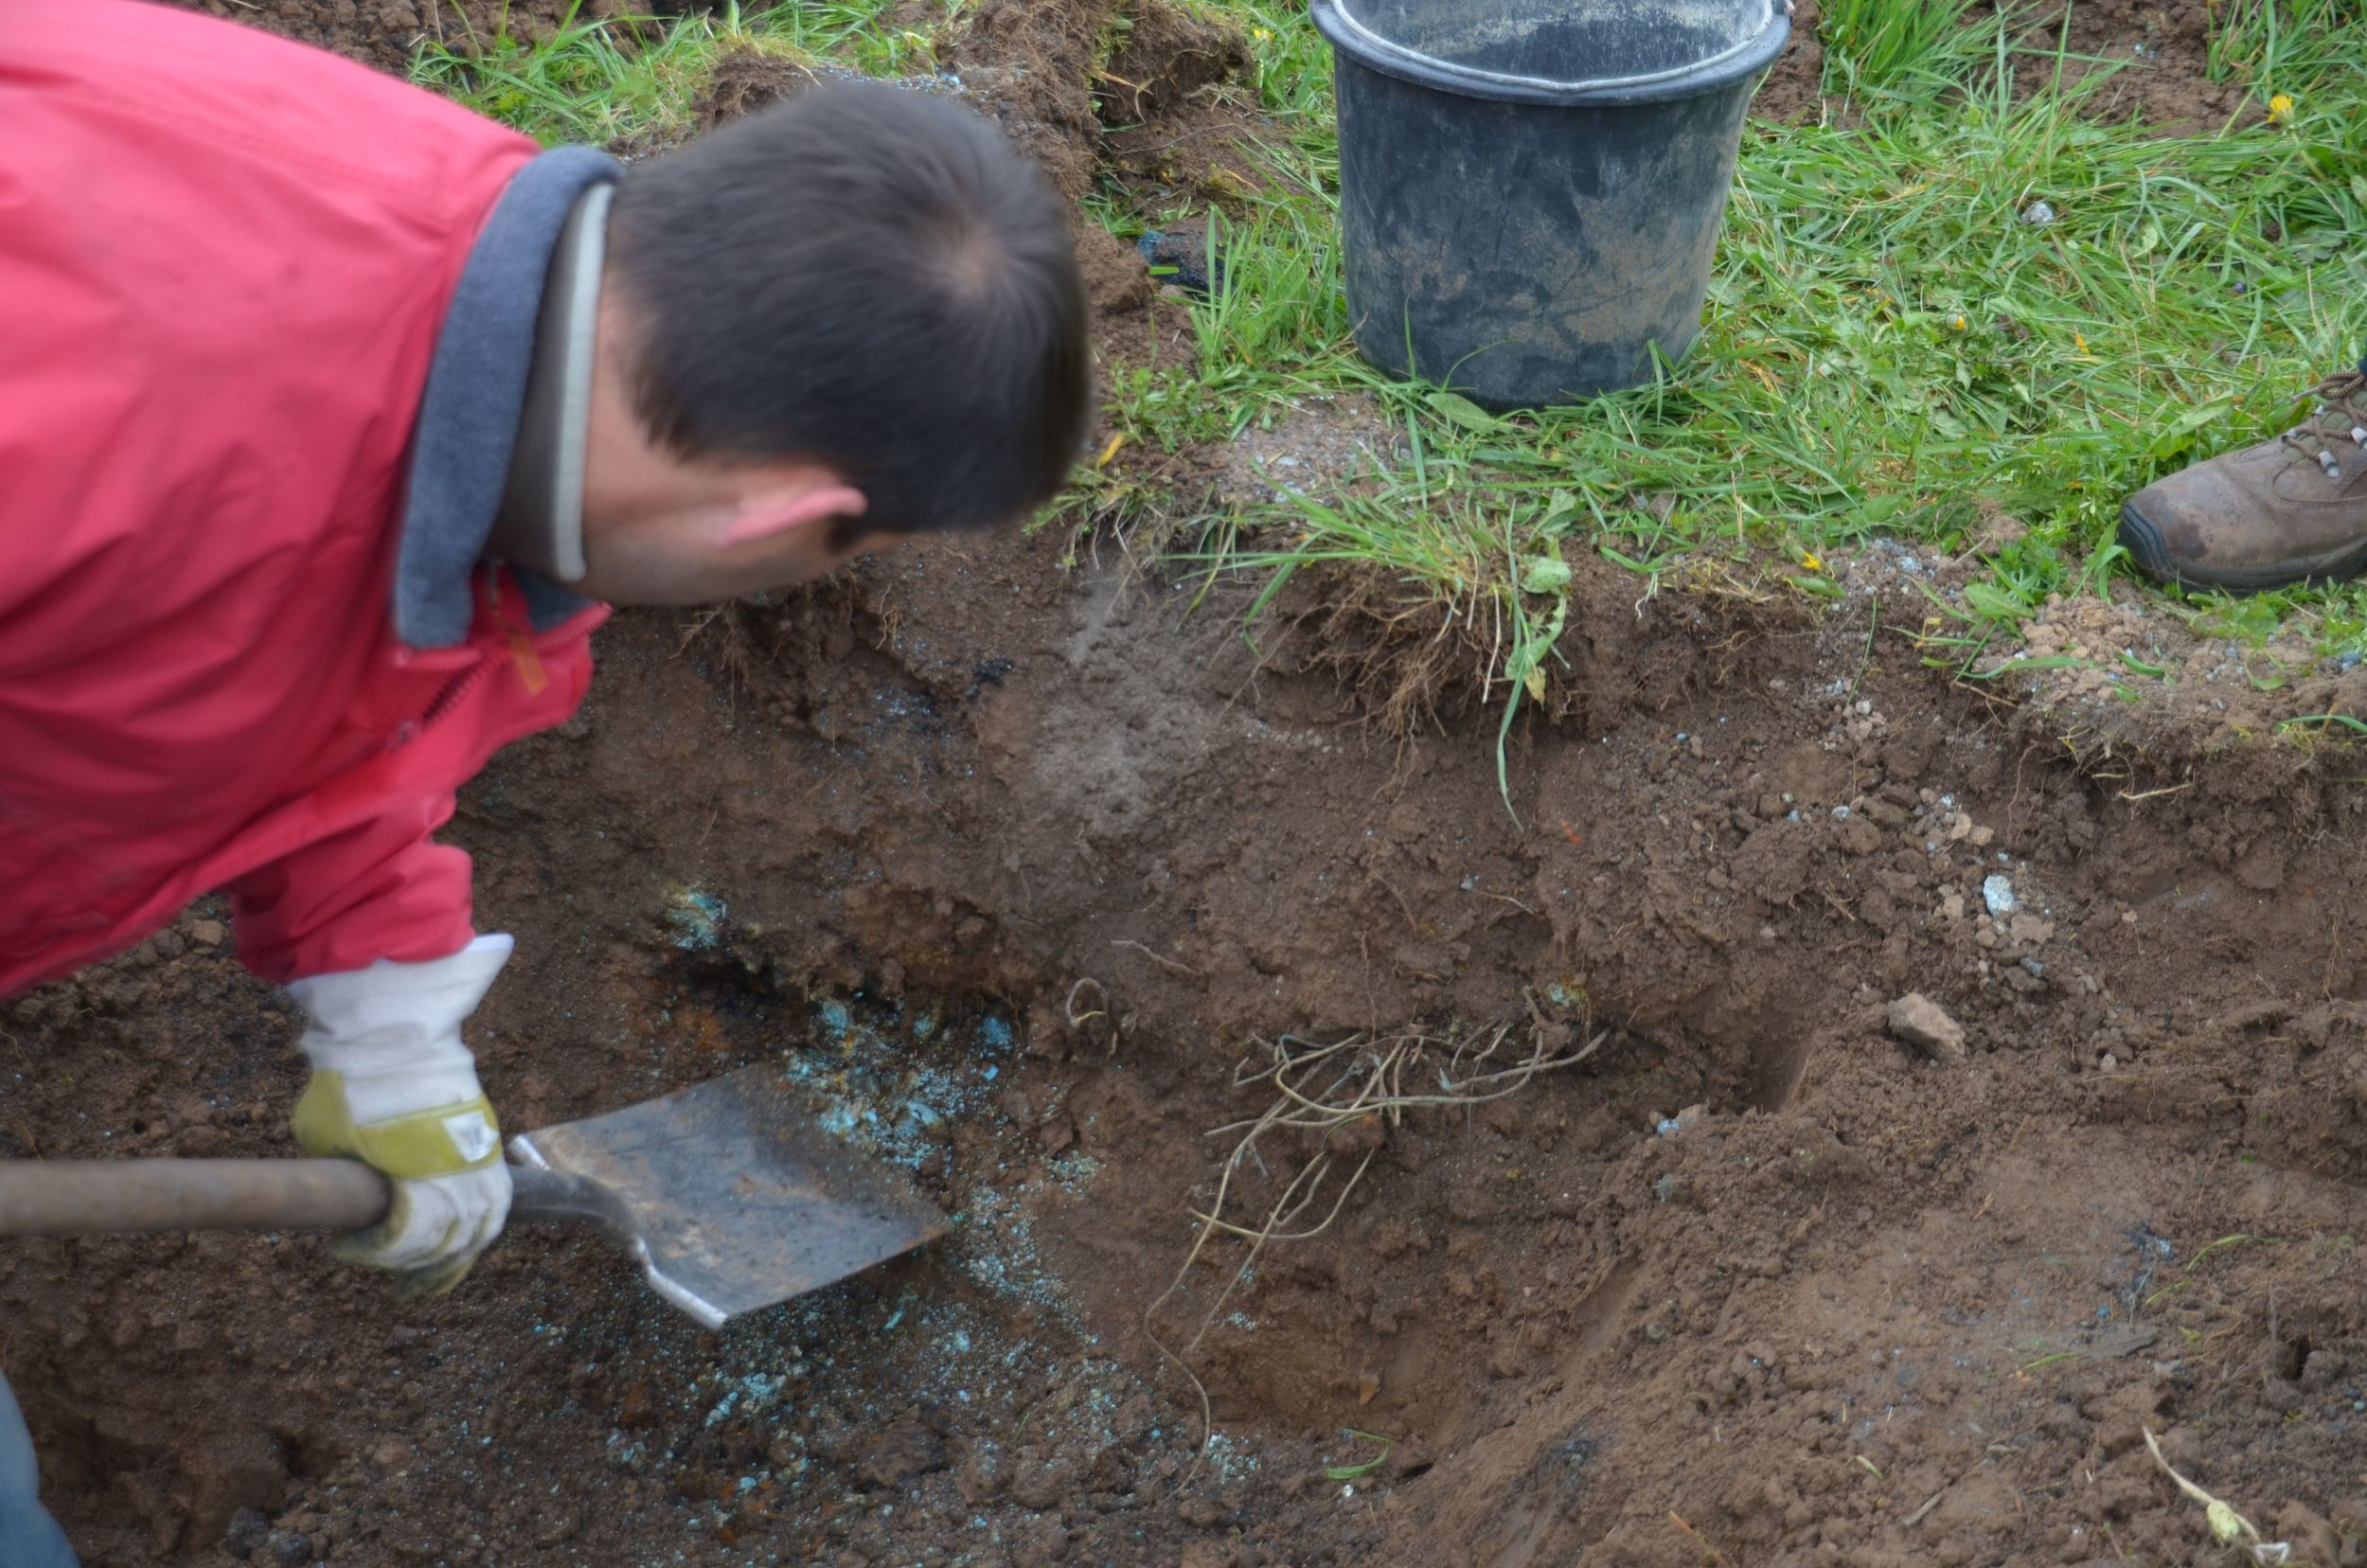 Bolin dig with spade